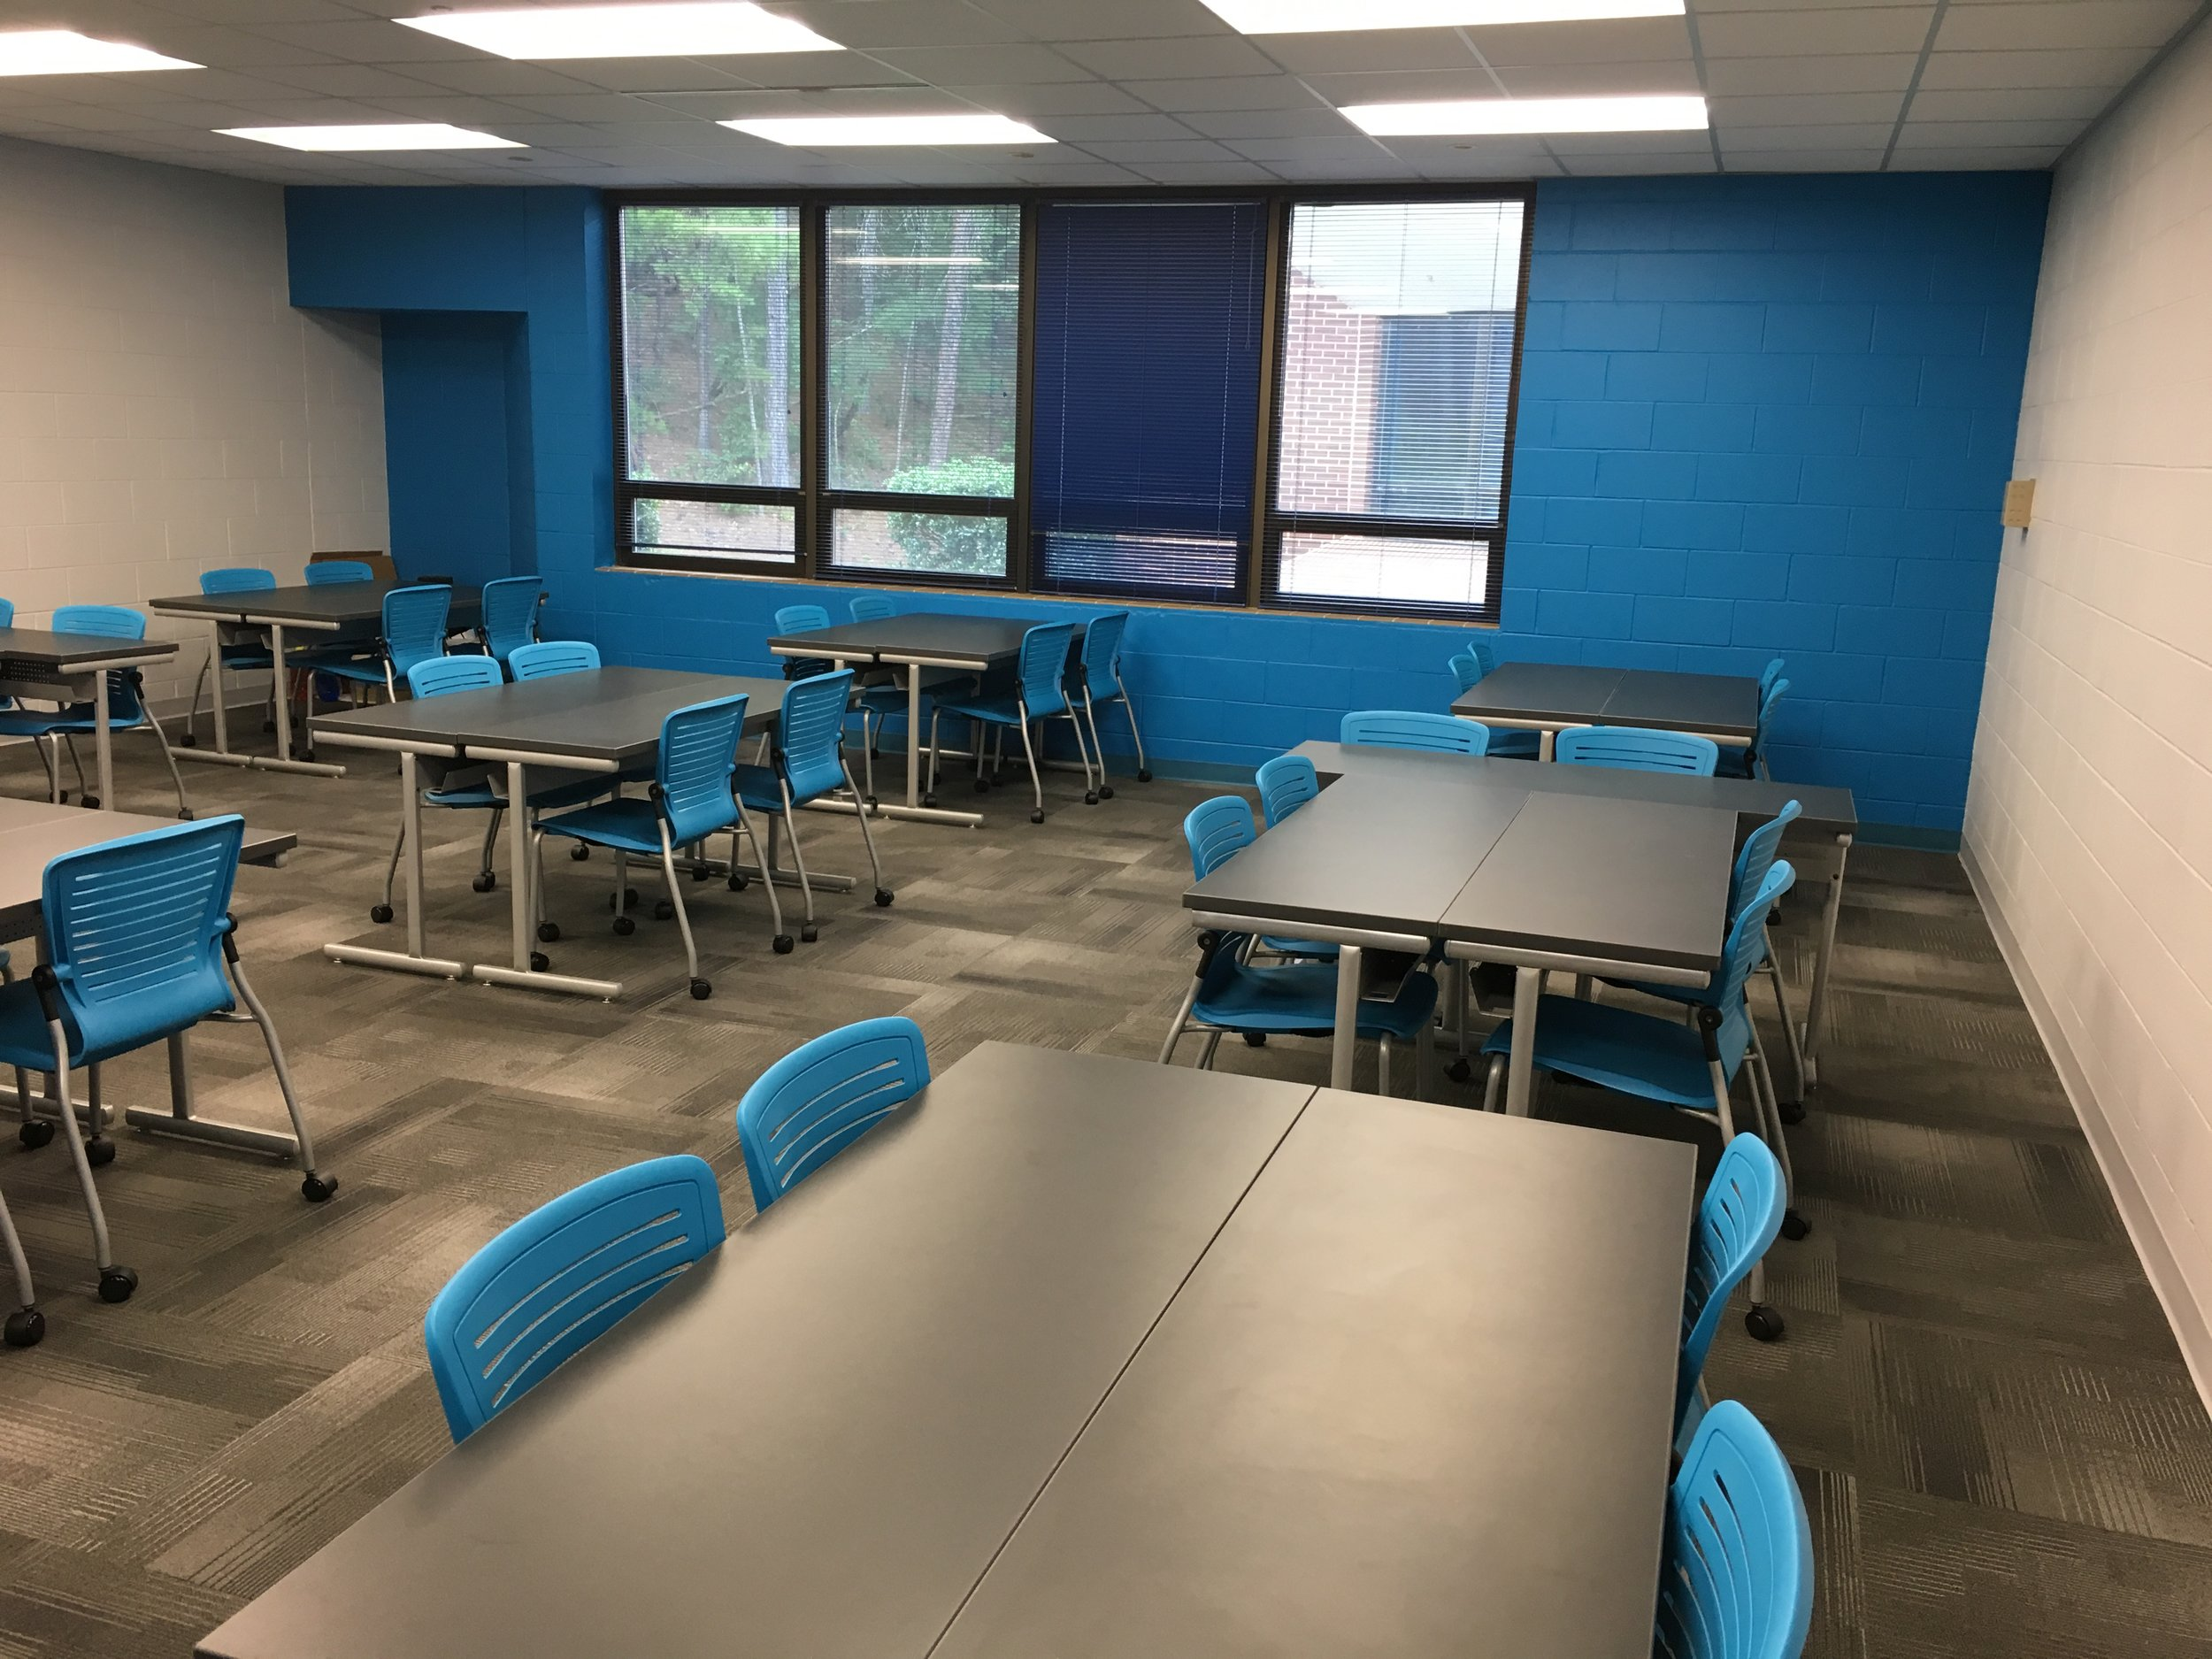 Jacksonville State University - Active Learning Table Install Pic 12.JPG